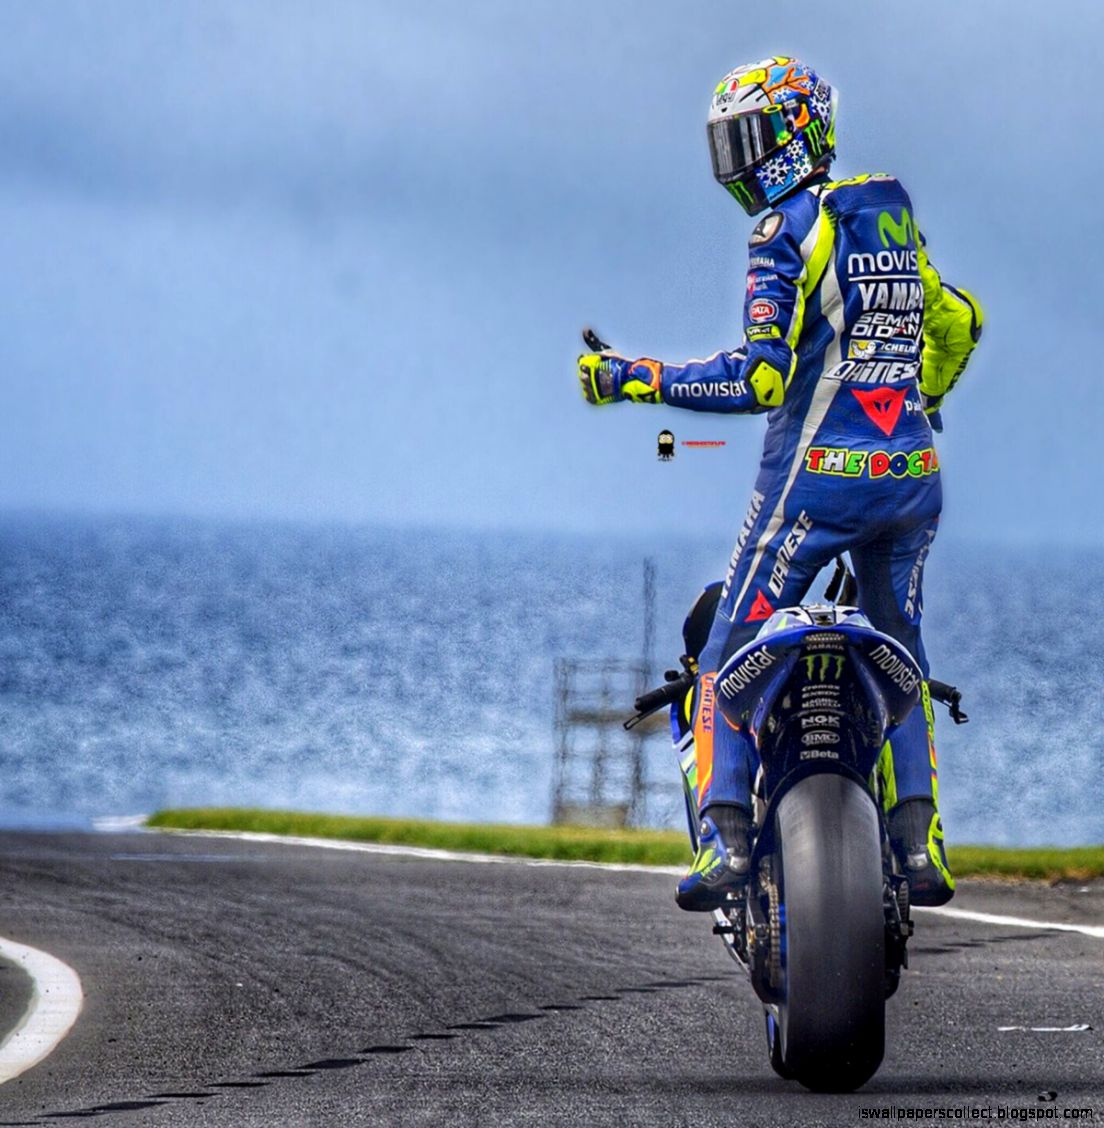 Valentino Rossi The Doctor Hd Wallpaper For Wallpapers | Wallpapers Collection